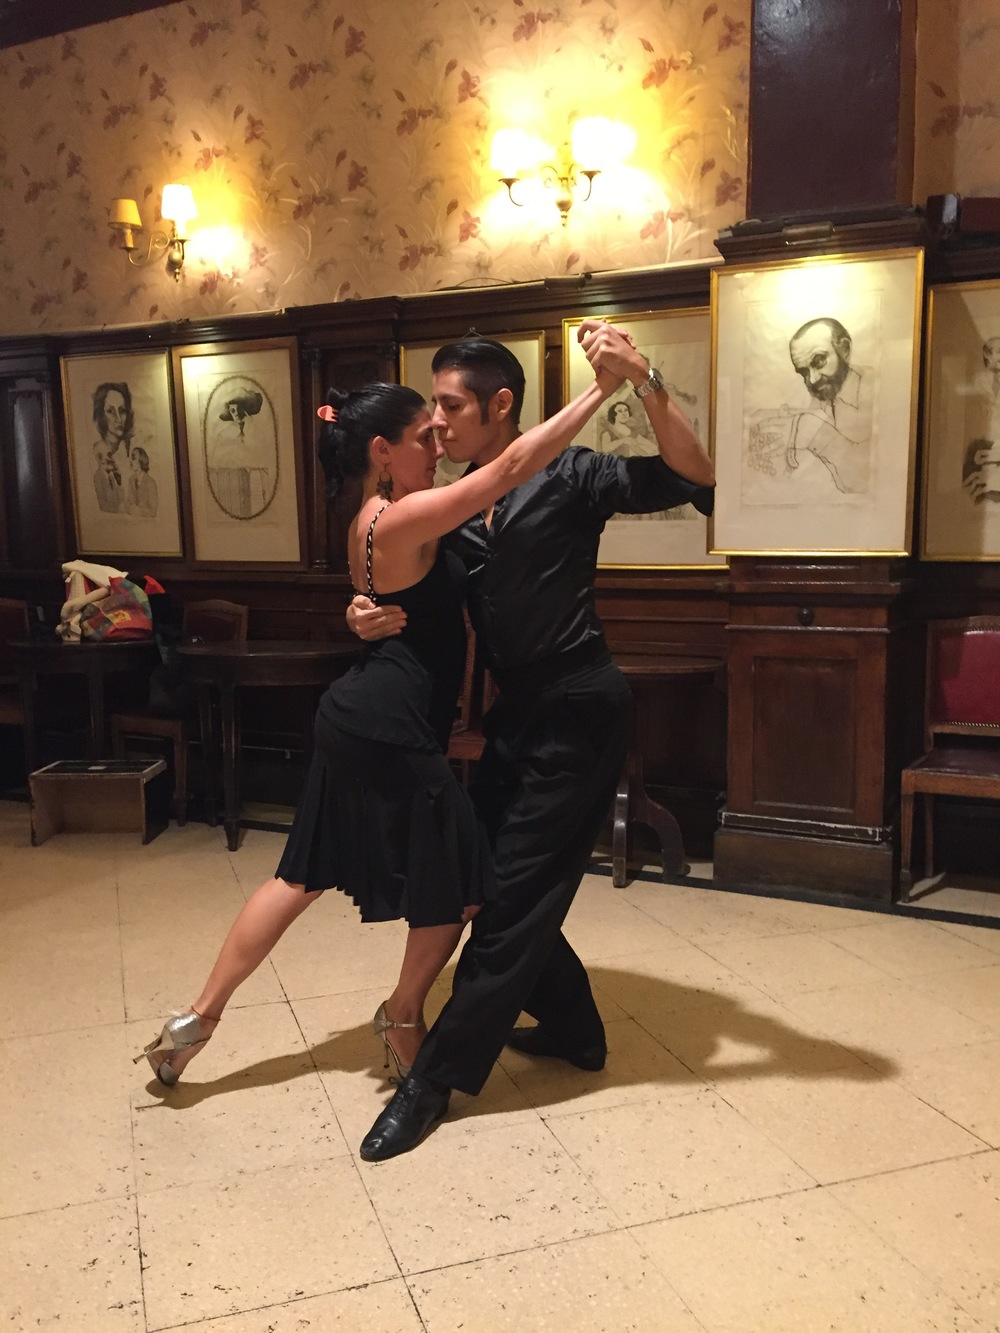 I took this photo of my tango dance instructors, who gave me my first lesson in the back rooms of the Gran Tortoni Cafe. I'm hooked!